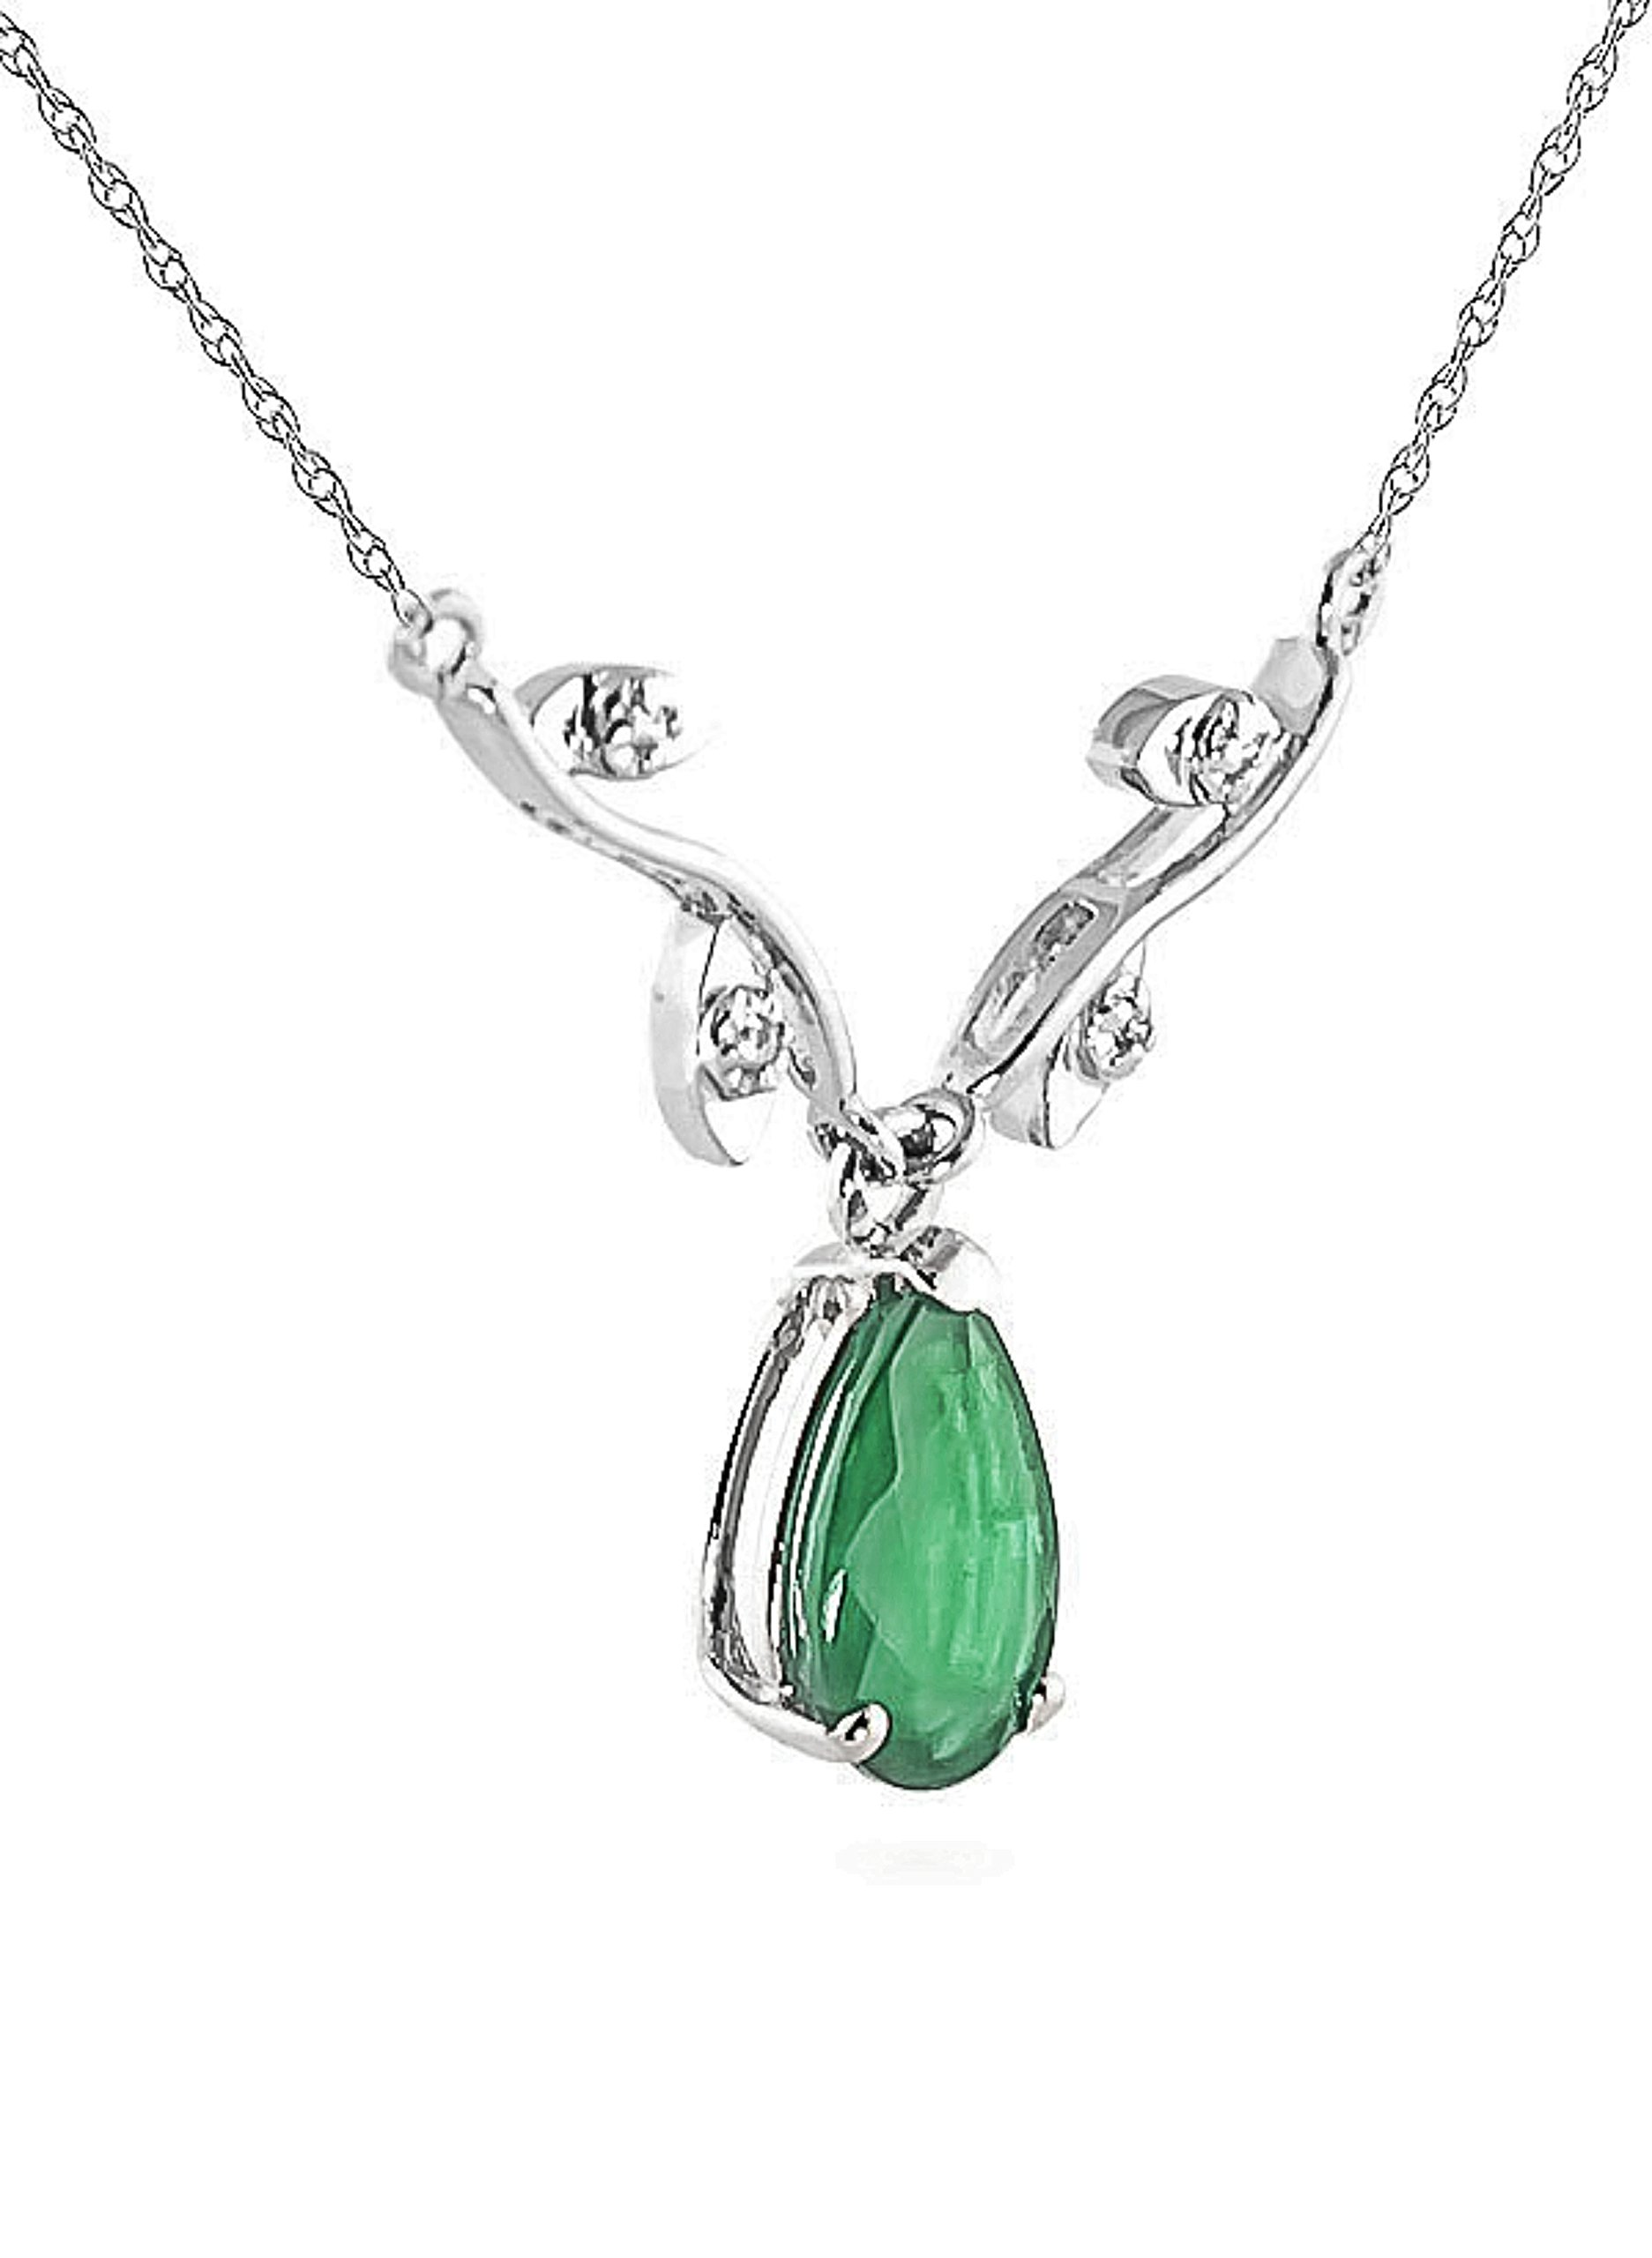 1.02 ct 14k White Gold Drop Necklace with Genuine Diamonds & Pear-Shaped Natural Emerald 4273W (20)